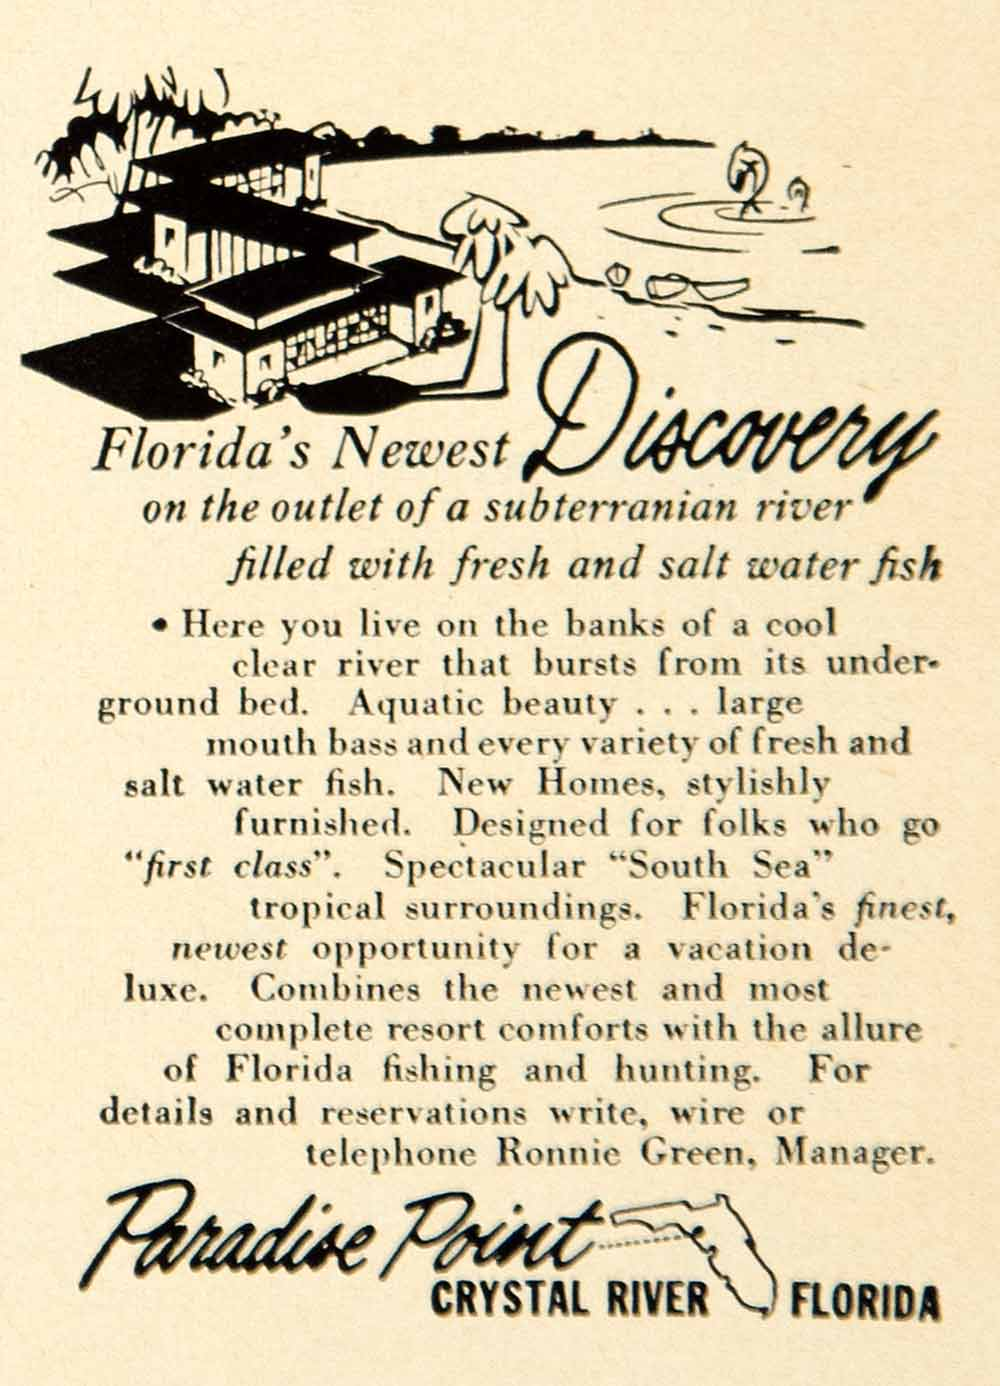 1950 Ad Paradise Point Crystal River Florida Fishing Hunting Vacation YFS2